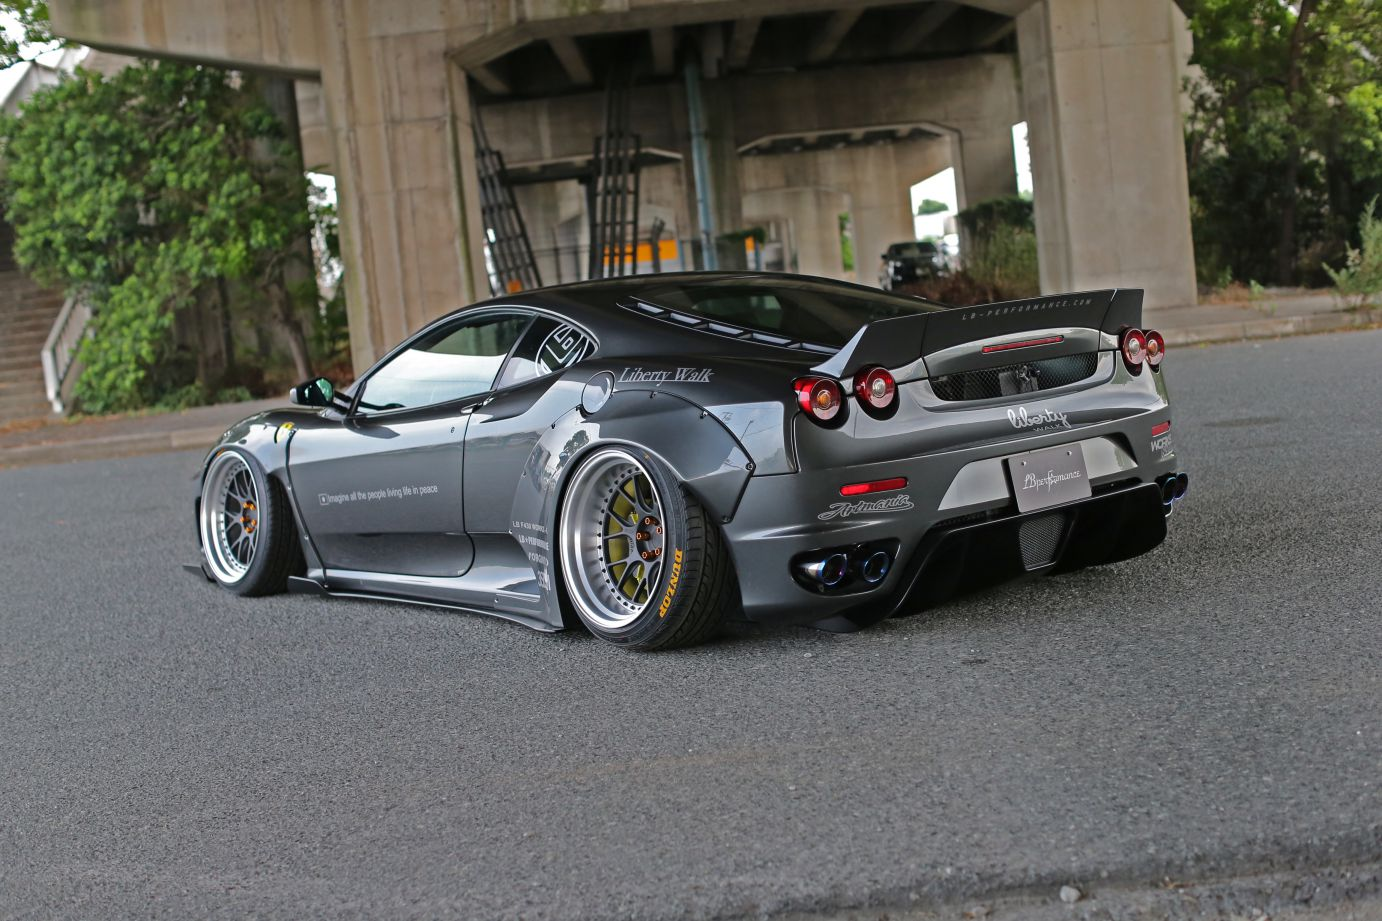 IMG_0779_compressed LB-WORKS F430